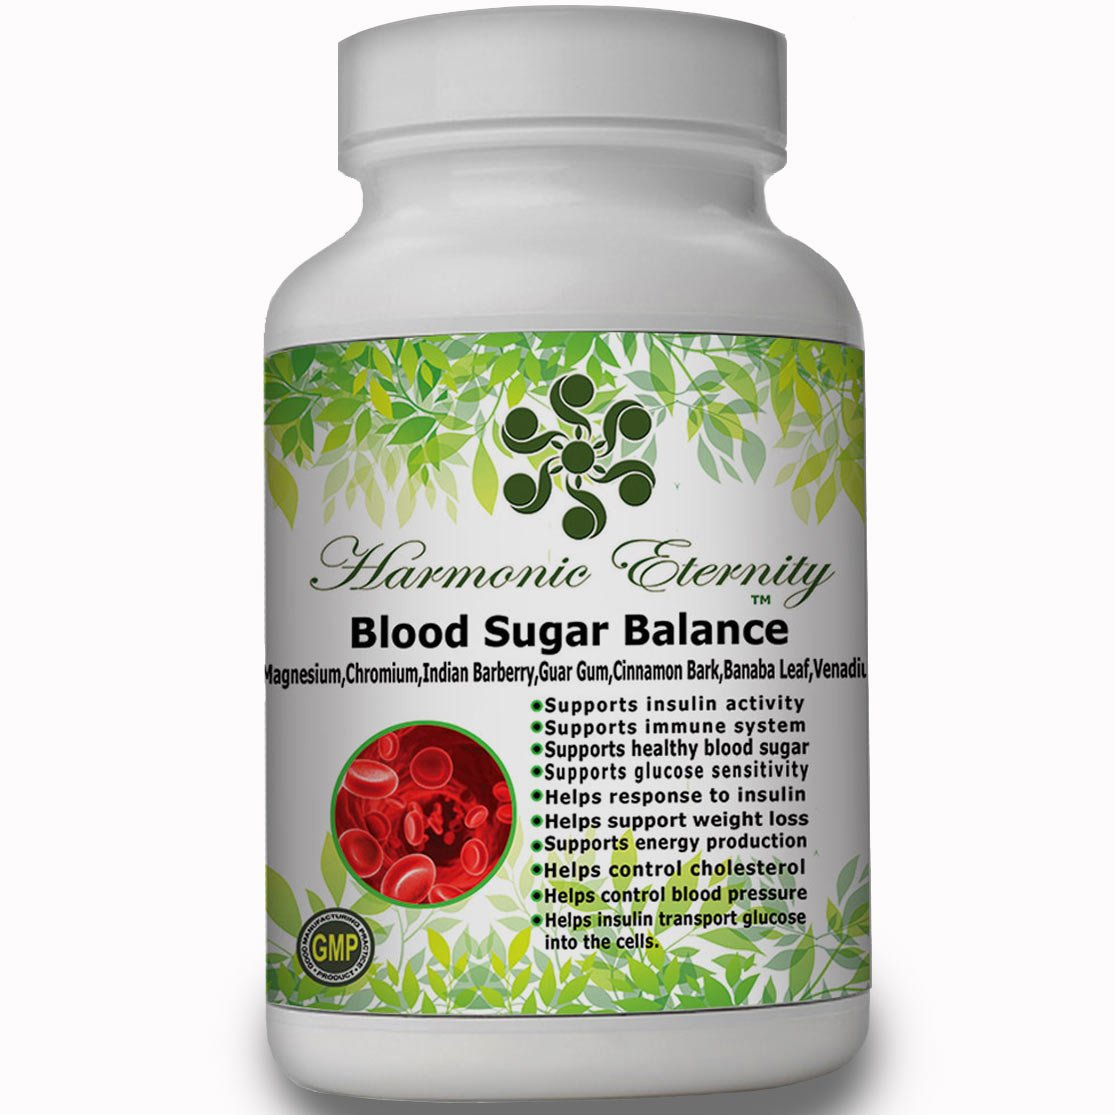 Blood Sugar Balance, The most complete blood sugar supplement with ADVANCED FACTORS like vitamins d3, b6,b12,biotin,zinc,magnesium,manganese,chromium,barberry,cinnamon,gymnema,alpha-lipoic acid'' by Harmonic Eternity